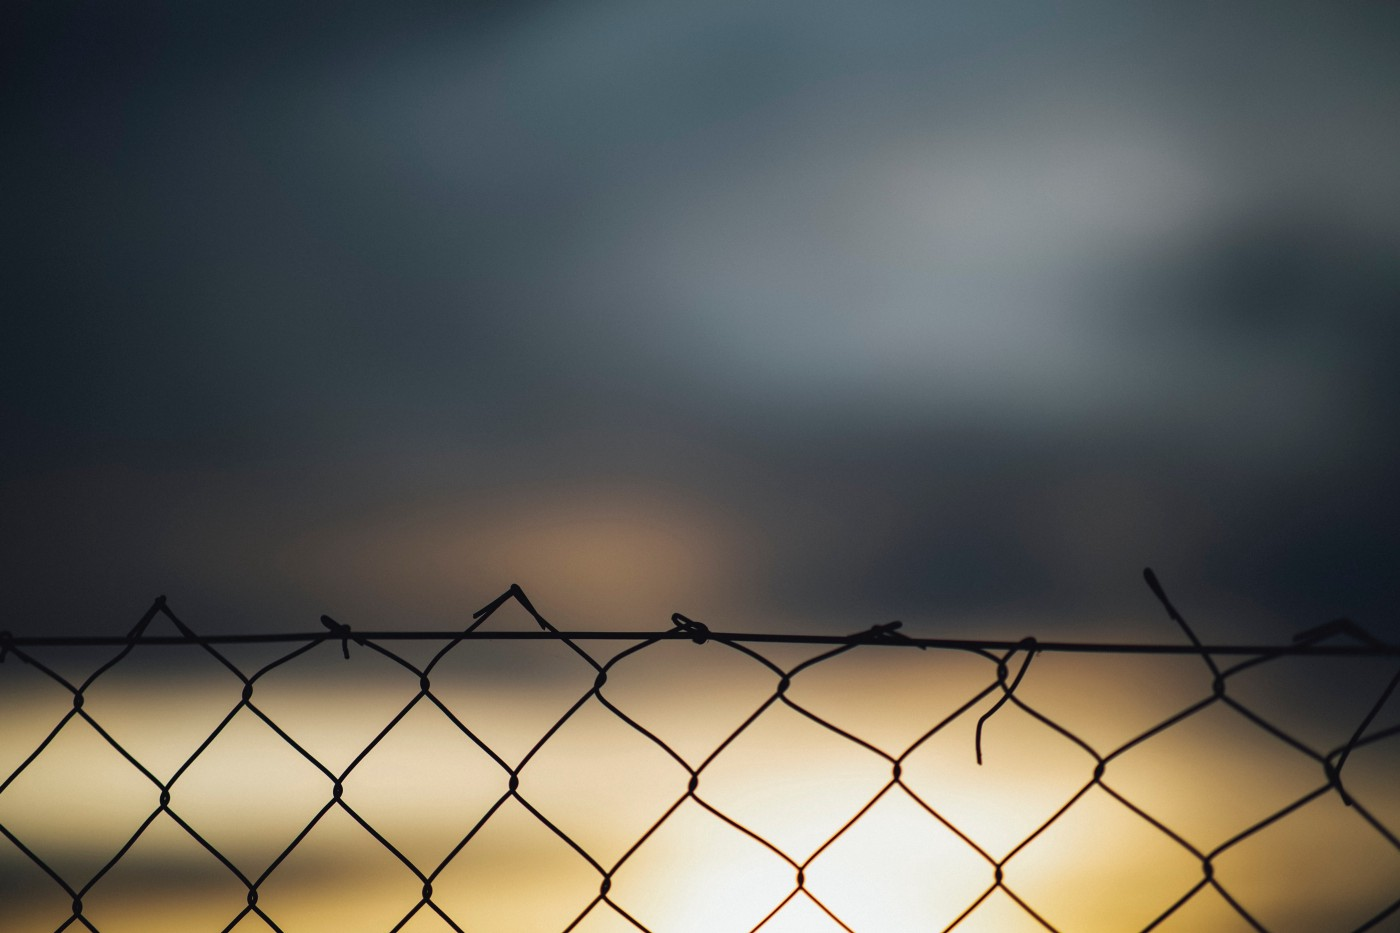 Barbed wire fence with blurry brightness beyond